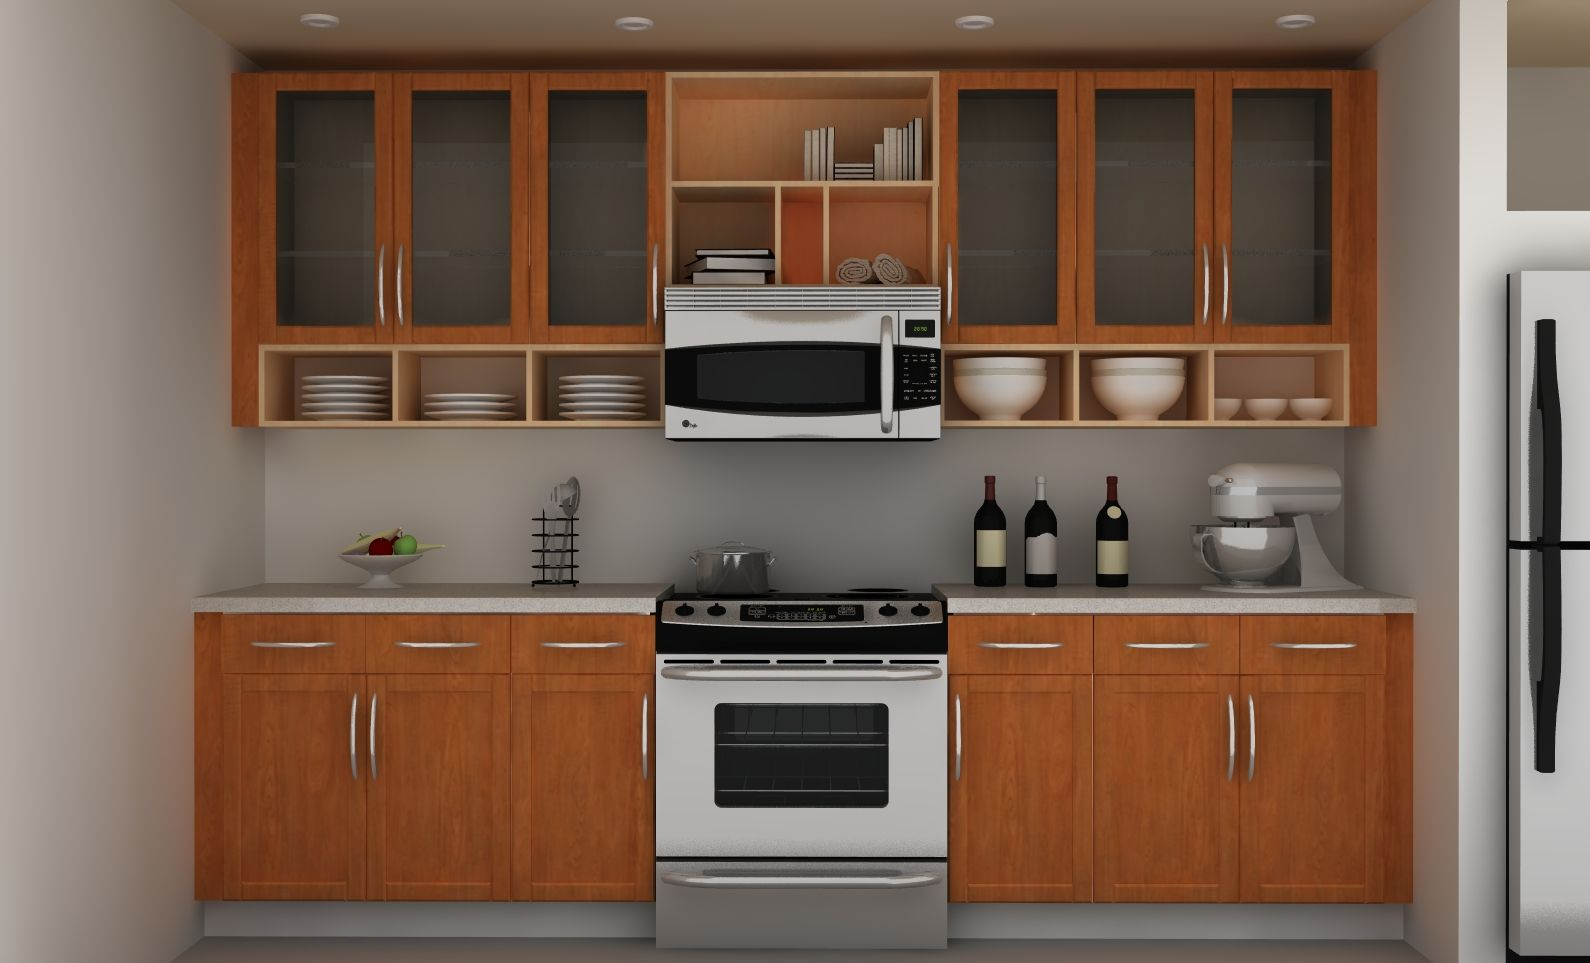 Kitchen Wall Cabinets For Easy Storage And Tidy Kitchen Kitchen Wall Cabinets Decorat Kitchen Remodel Small Kitchen Cabinet Styles Hanging Kitchen Cabinets